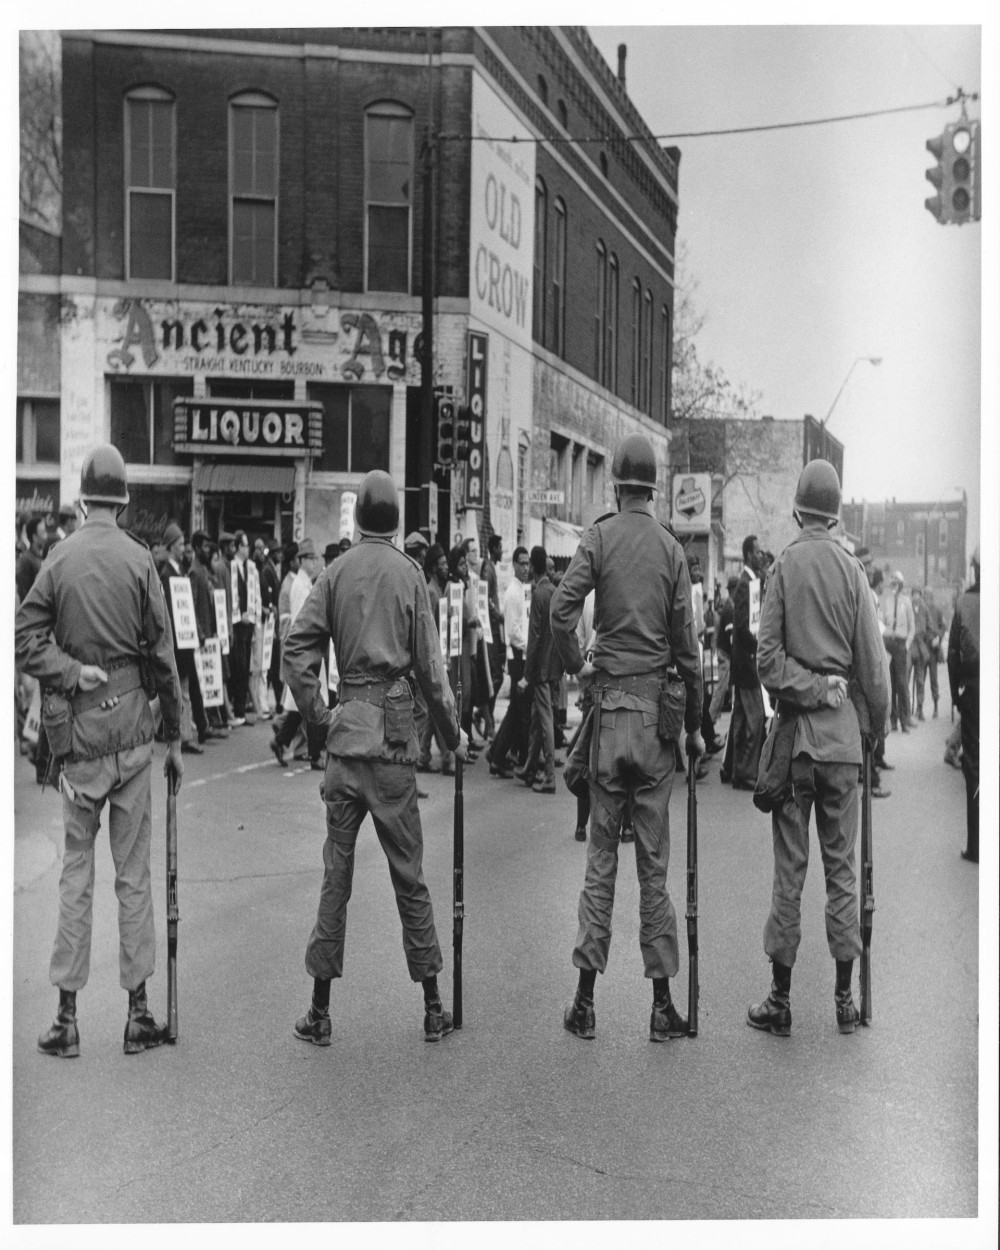 National Guard at Main and Linden Street after the assassination of Dr. King, Ernest Withers